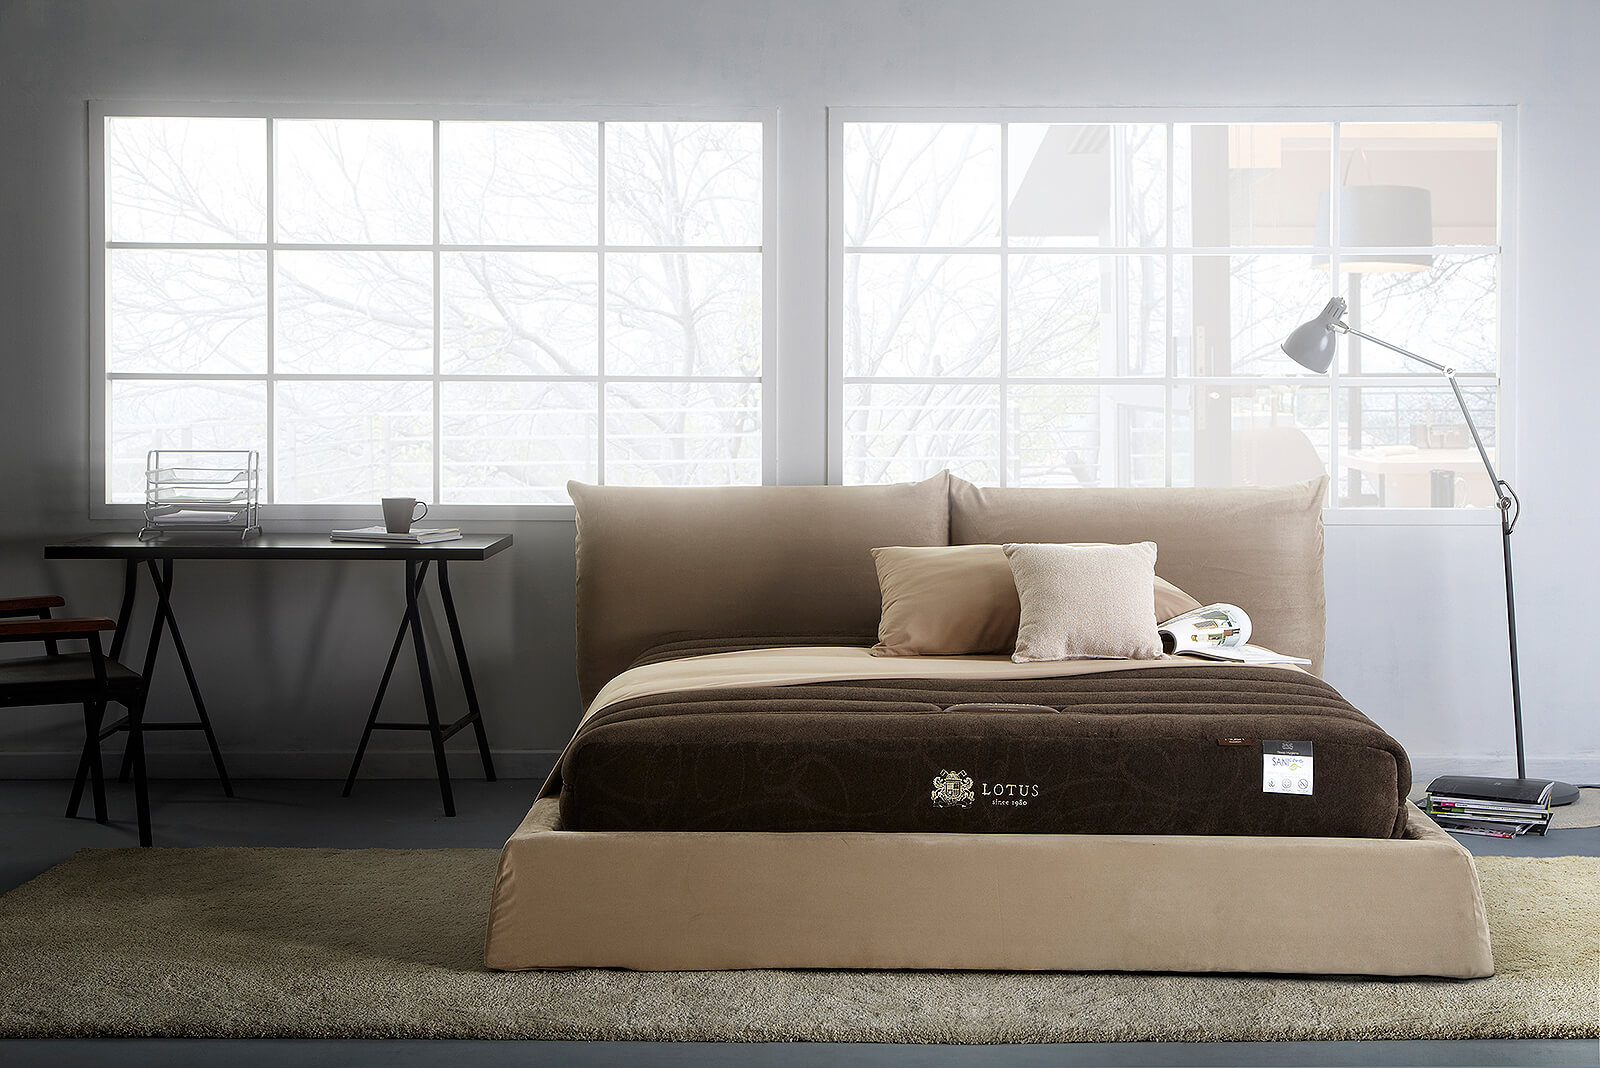 Lotus Mattress Royal Nodic